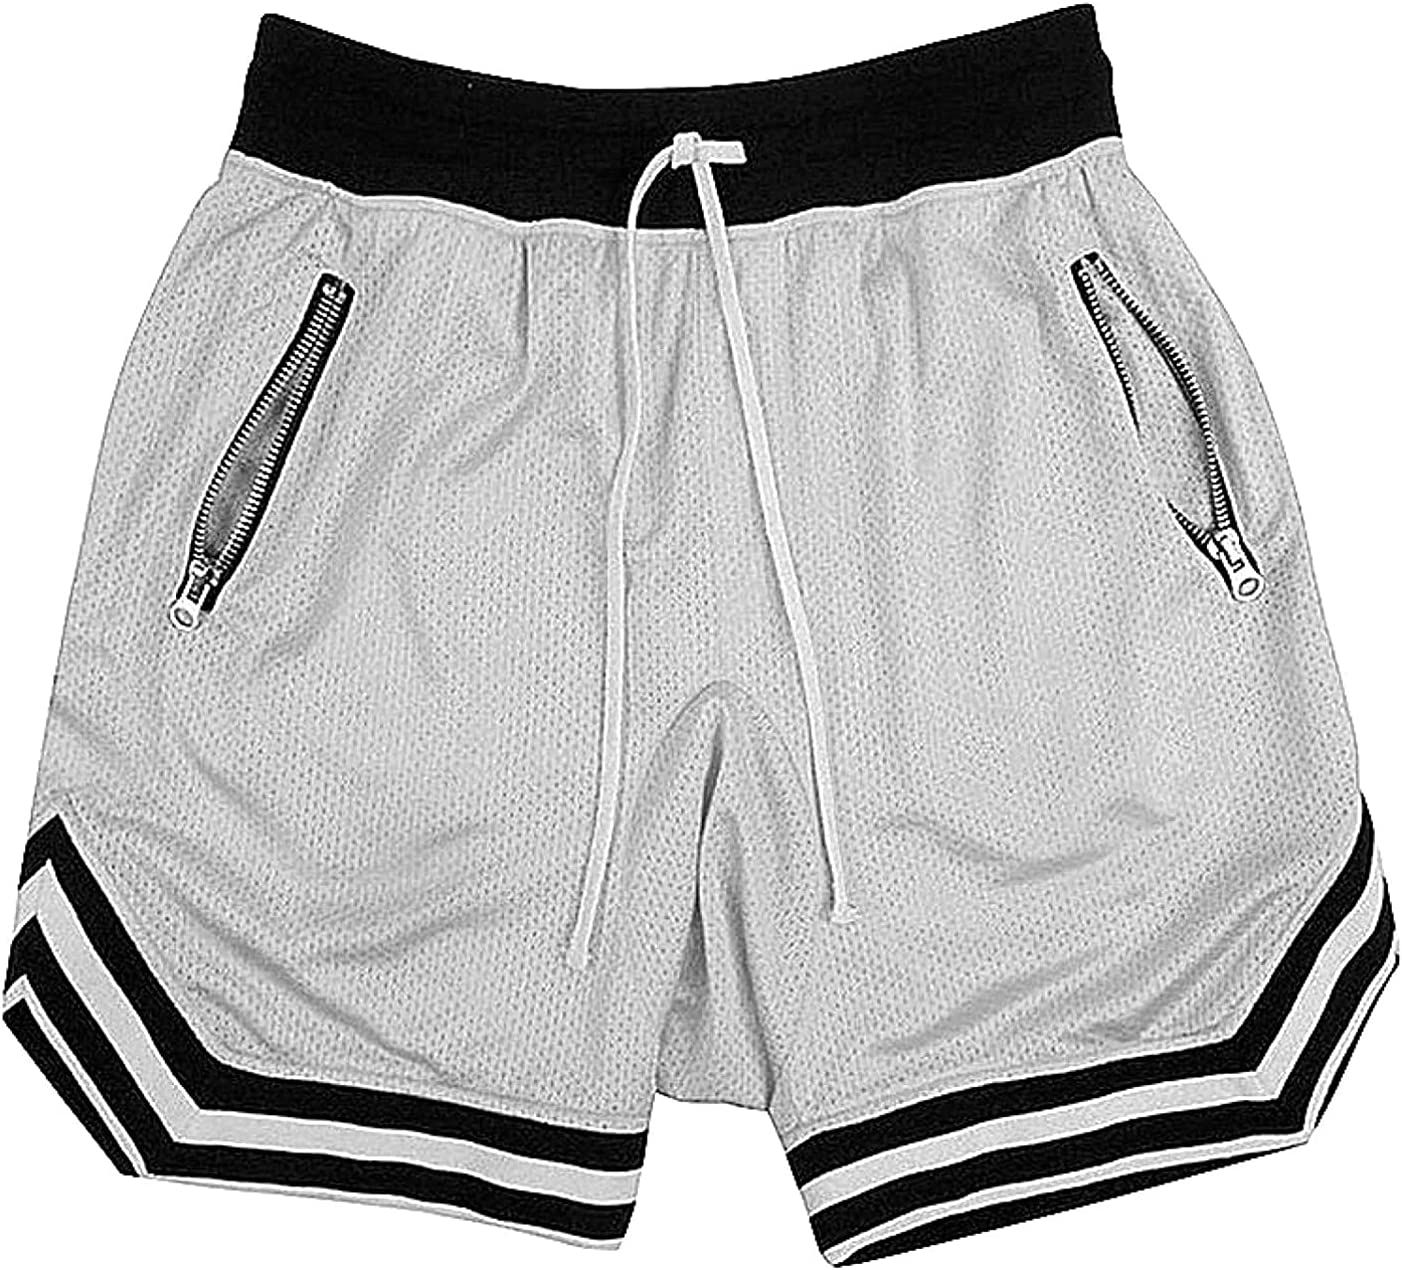 Max 80% OFF Men's Mesh Athletic Training Shorts Dr with Quick Pockets shop Zipper